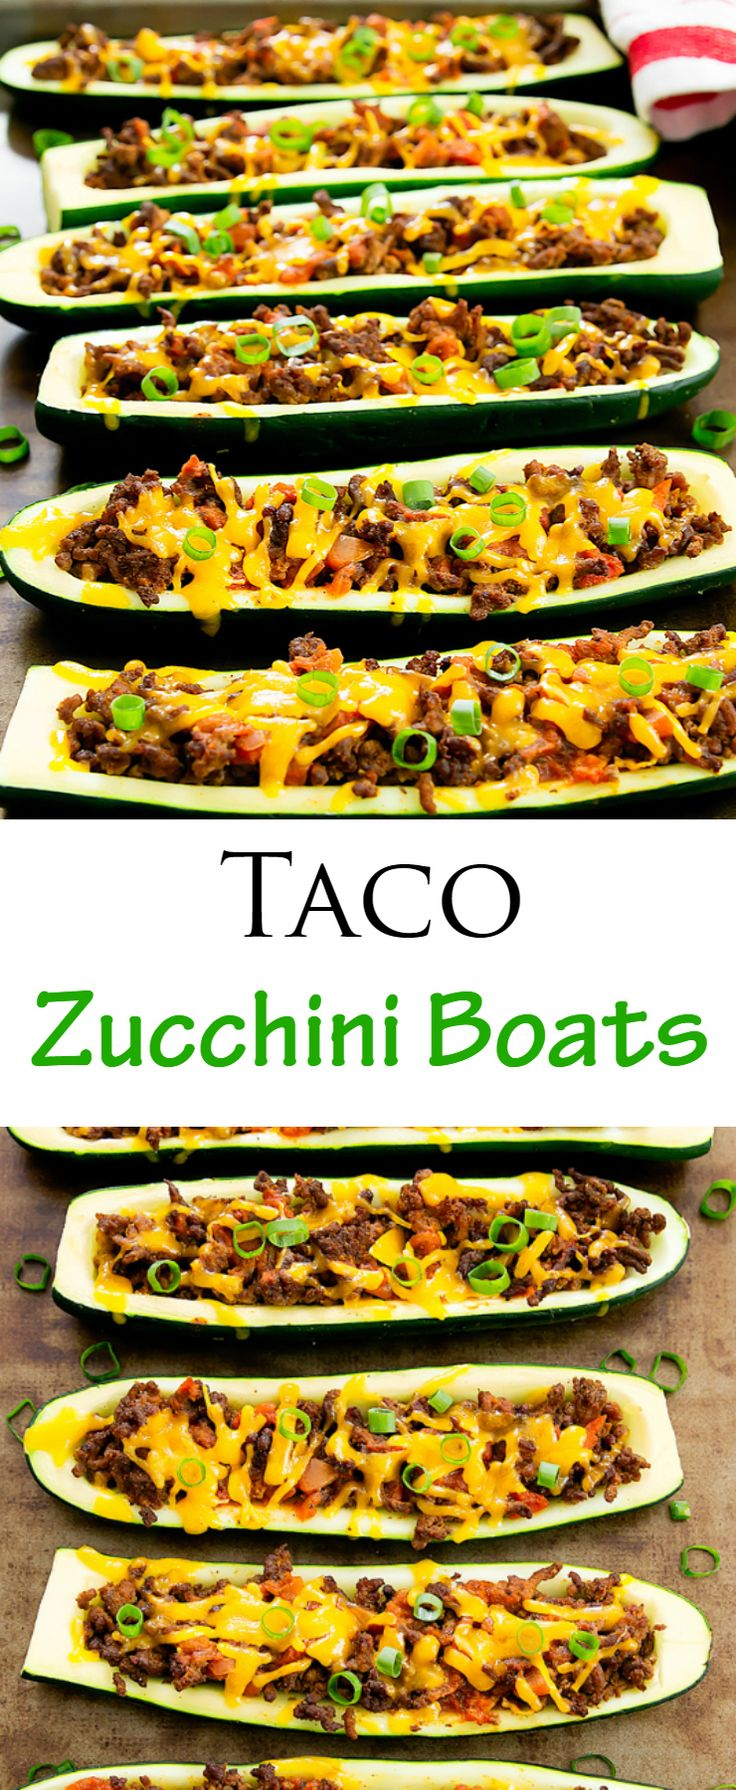 Taco Zucchini Boats. Low carb and healthy solution for taco night!